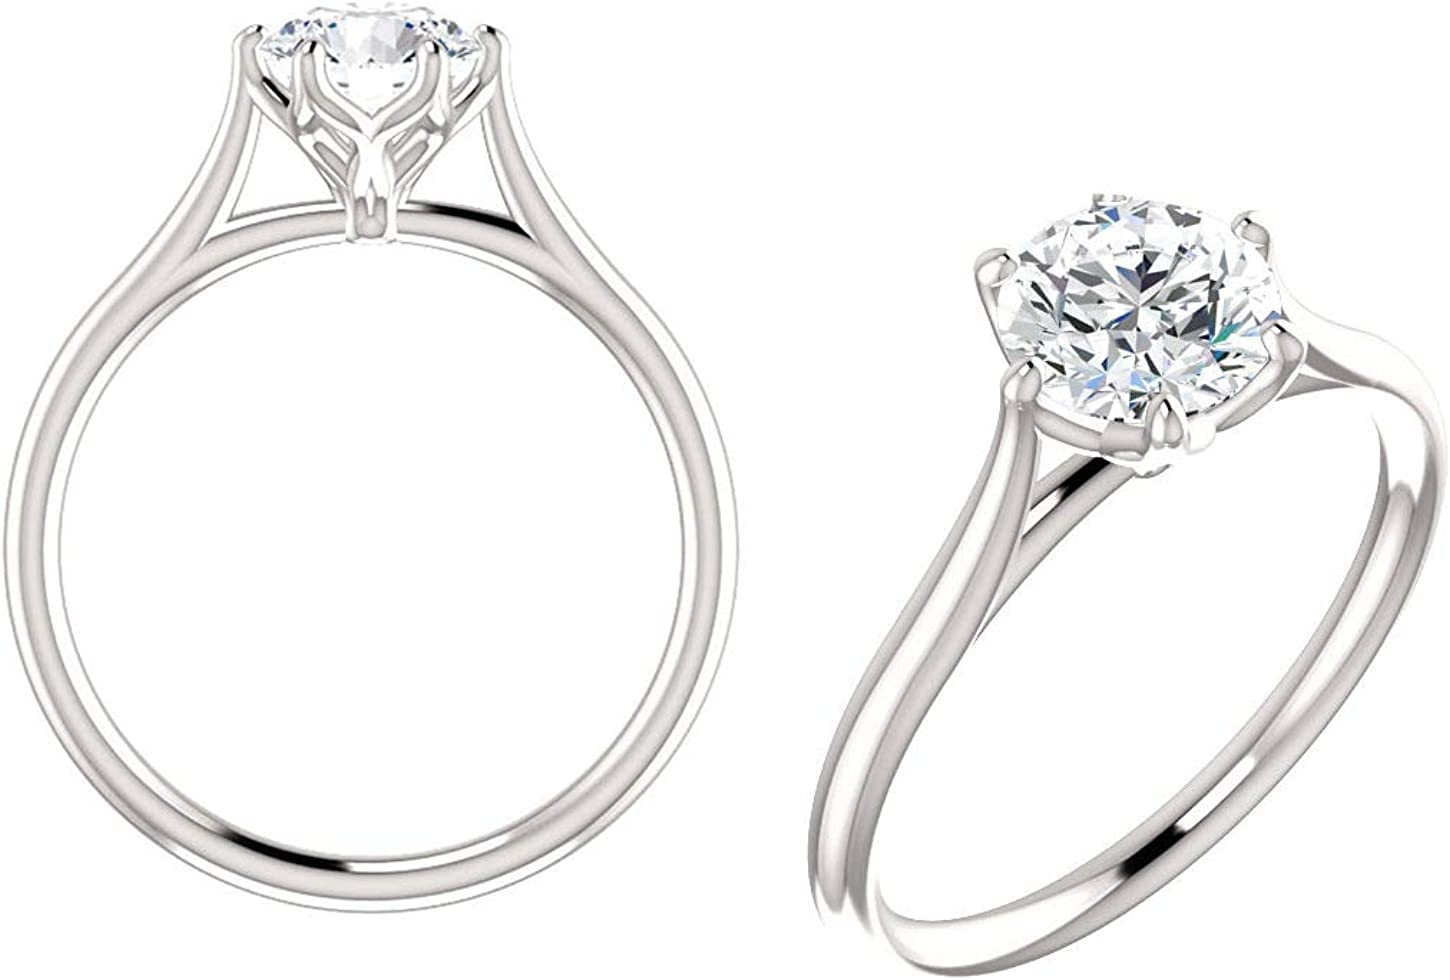 1.70 Ct Trillion Cut Moissanite Solitaire Halo Engagement Ring With Unique Leaf Prongs 14K White Gold Ring Anniversary Gift For Her